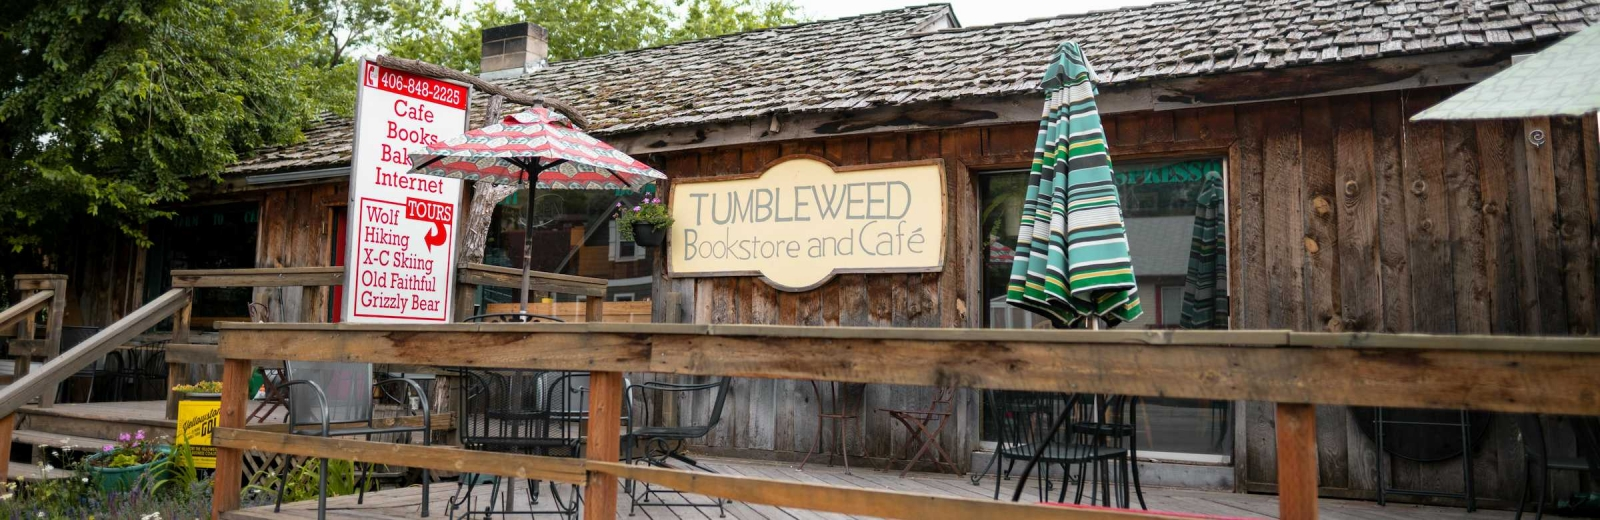 Tumbleweed Bookstore and Cafe